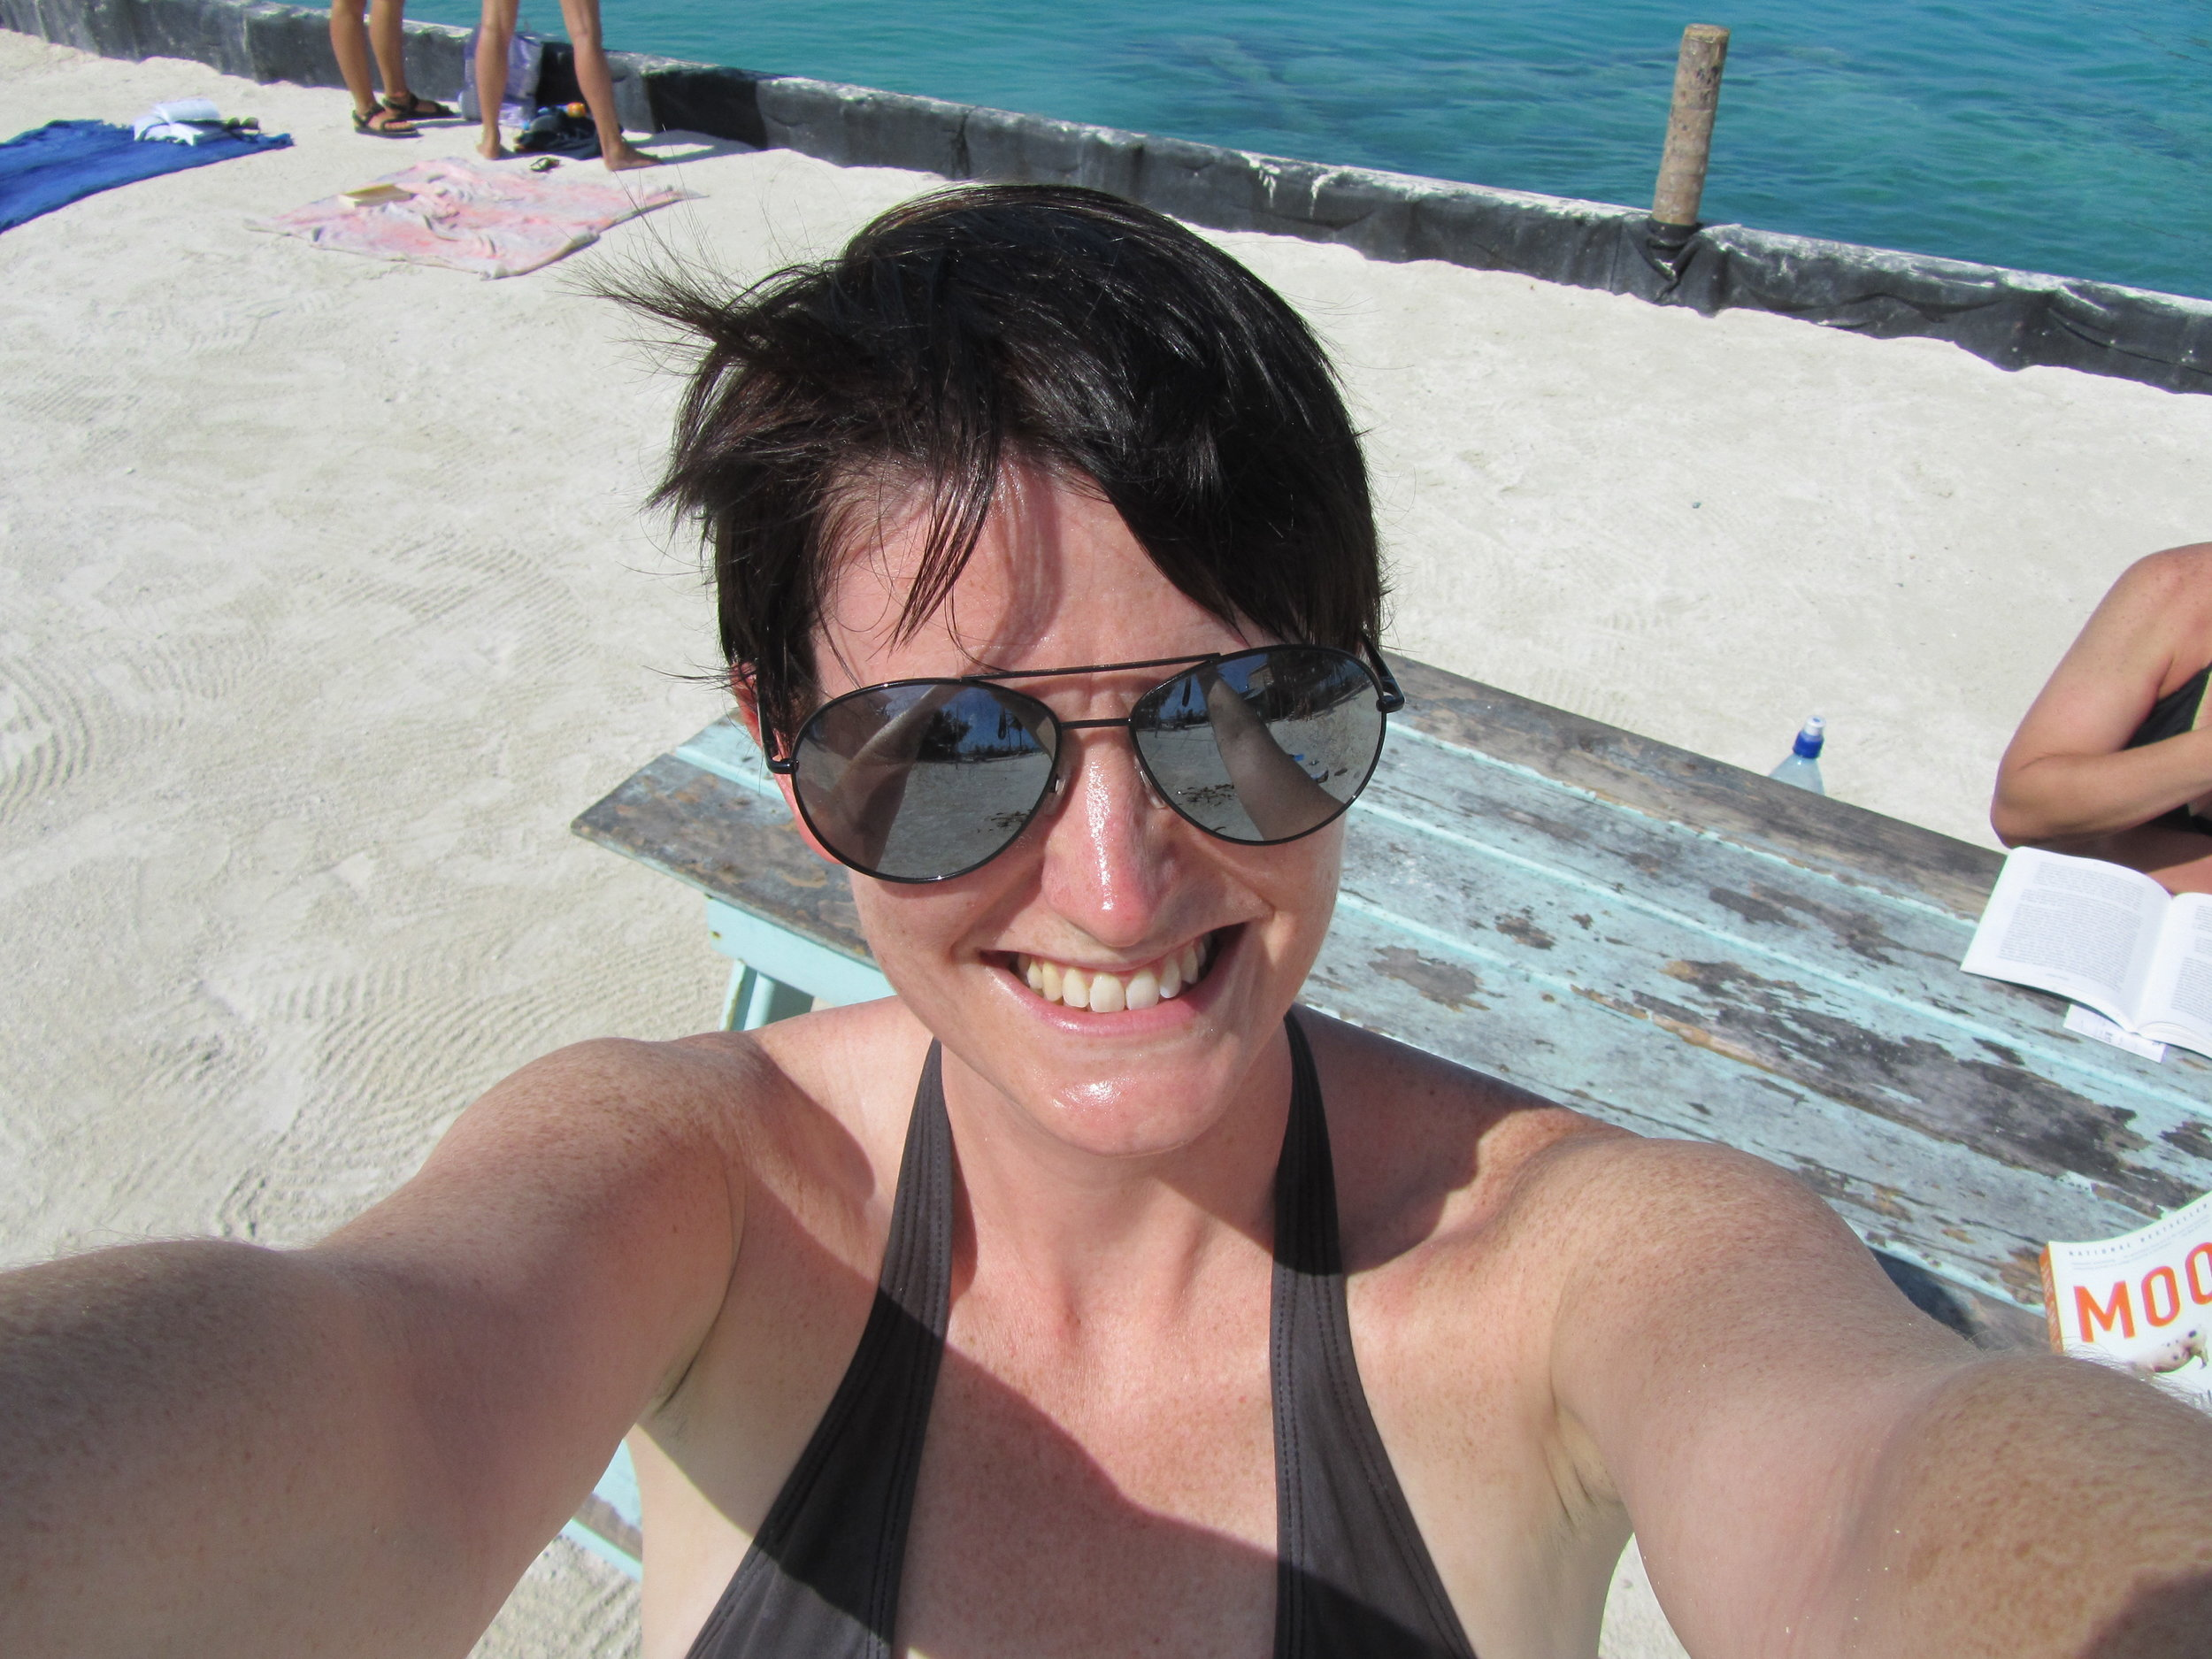 Me in Caye Caulker, Belize. My travel buddy is in the background, at the table. December 2012.